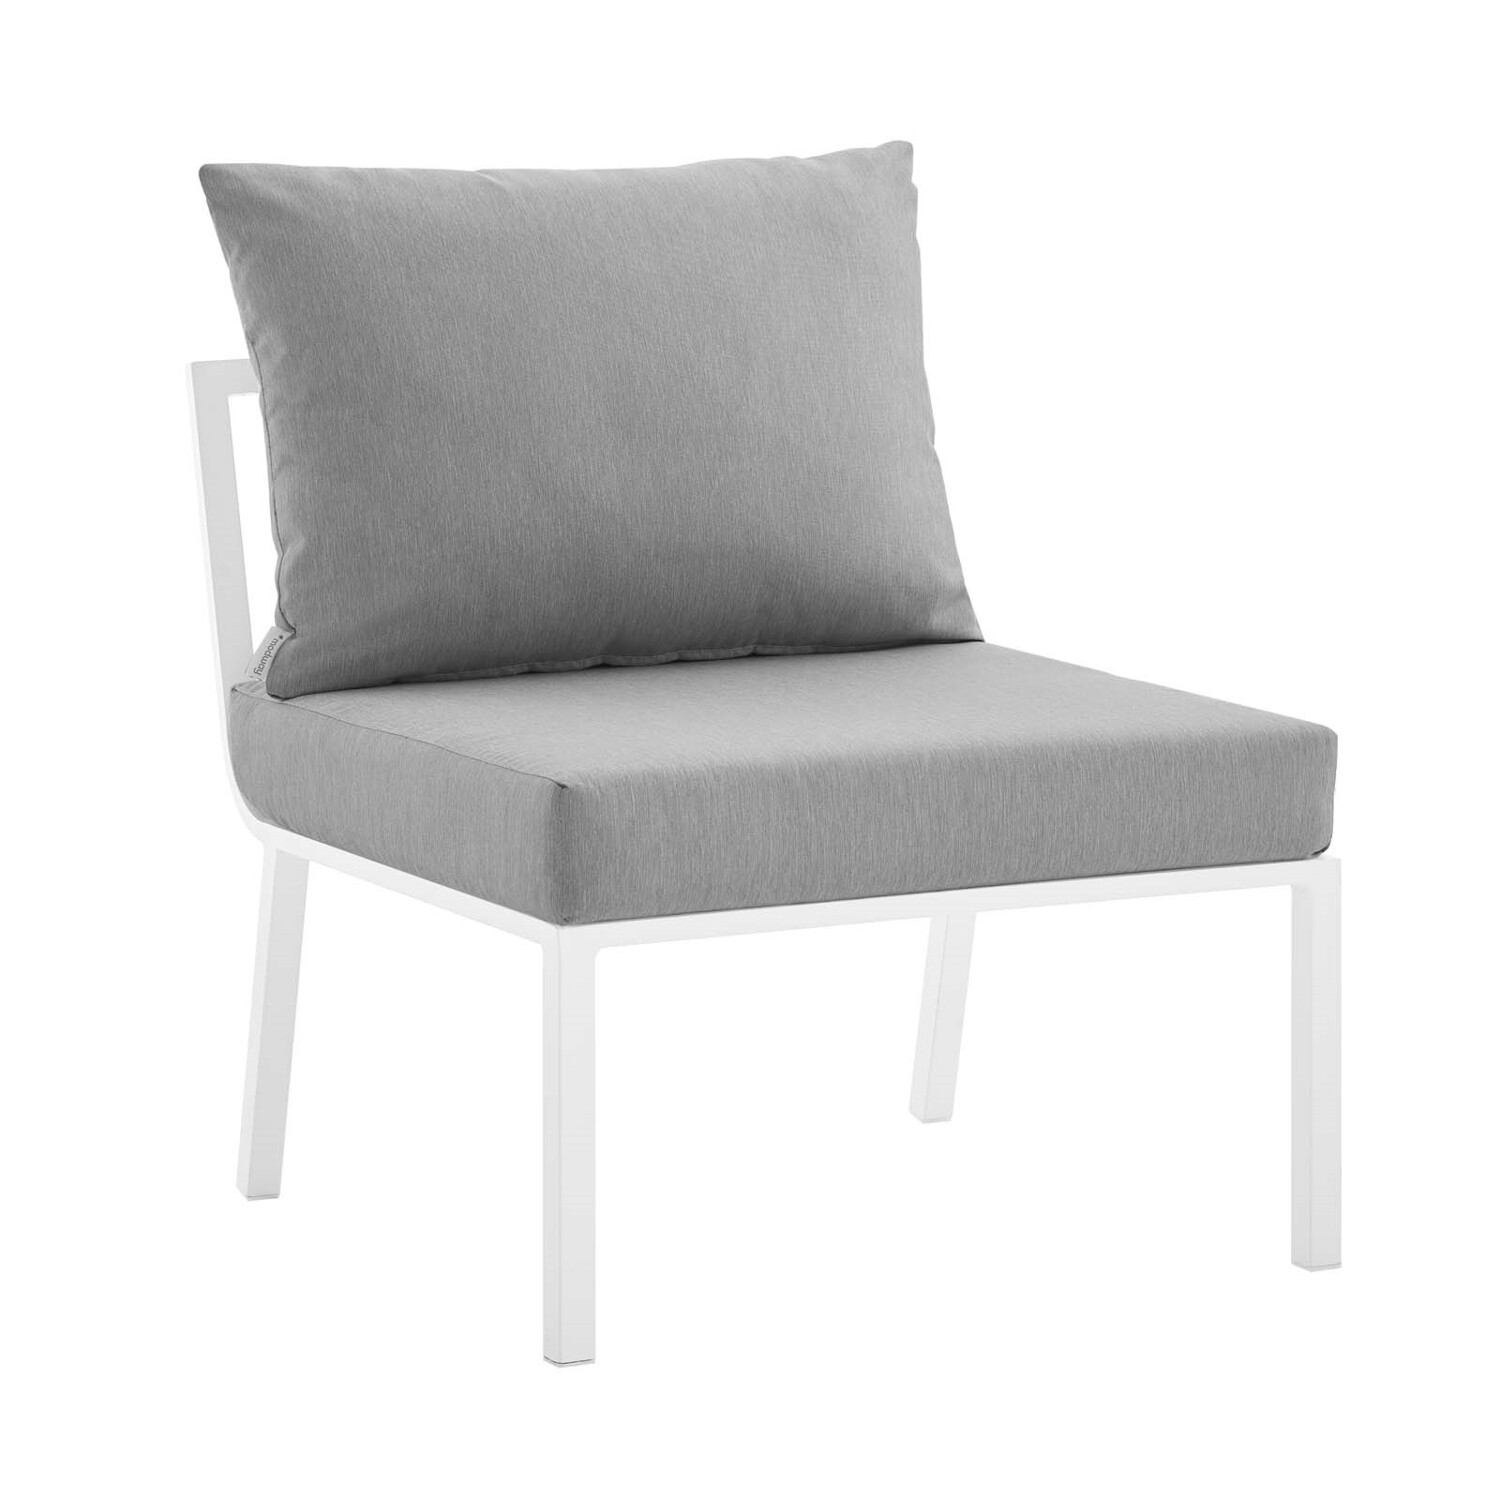 River North Patio Sectional Armless Chair | White Aluminum Frame